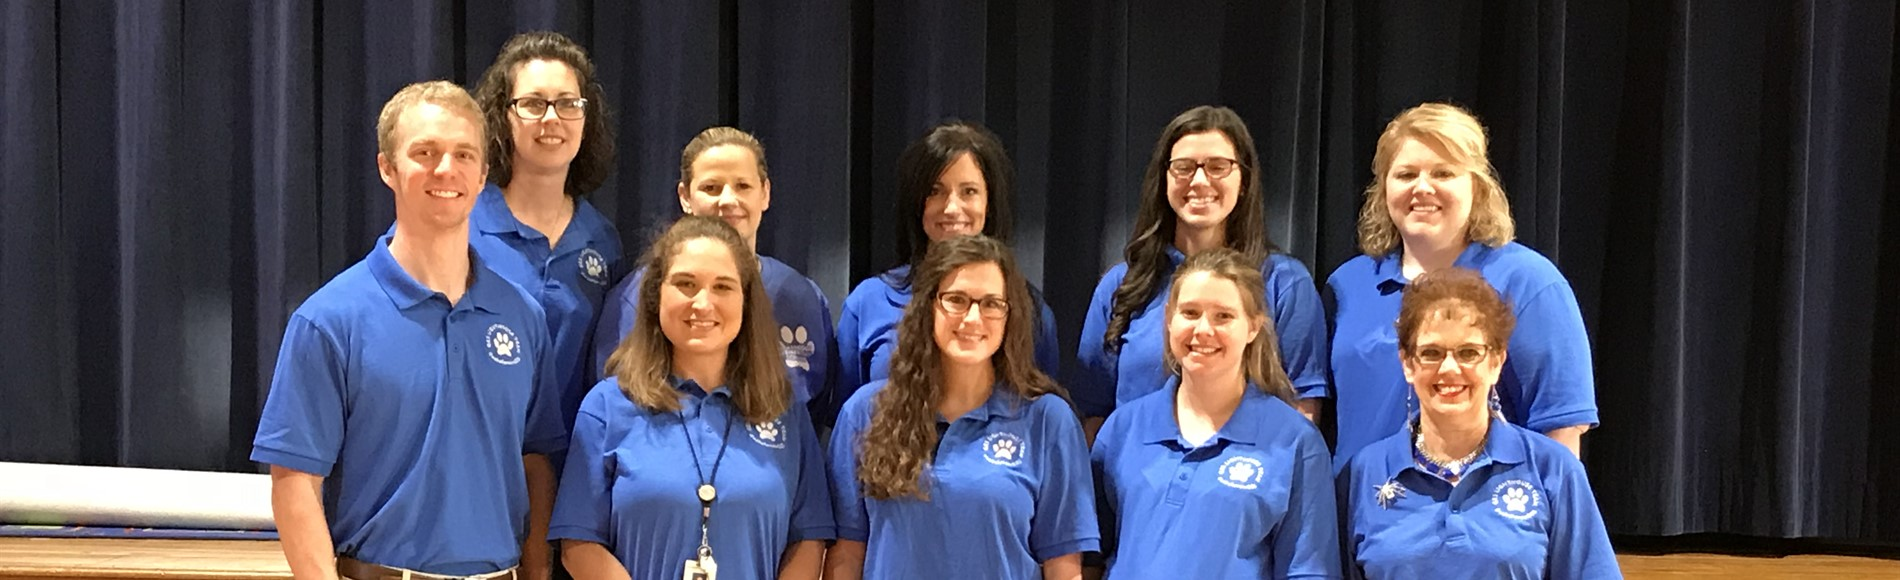 2017-2018 Lighthouse Team. (front) Matthew Reed, Amanda Carrico, Daily Goatley, Sydney Cox and Annette Dennison. (back) Lee Morgeson, Alicia Kelly, Angie Akers, Abby Smith & Kellie Wise. #webelieveinGES